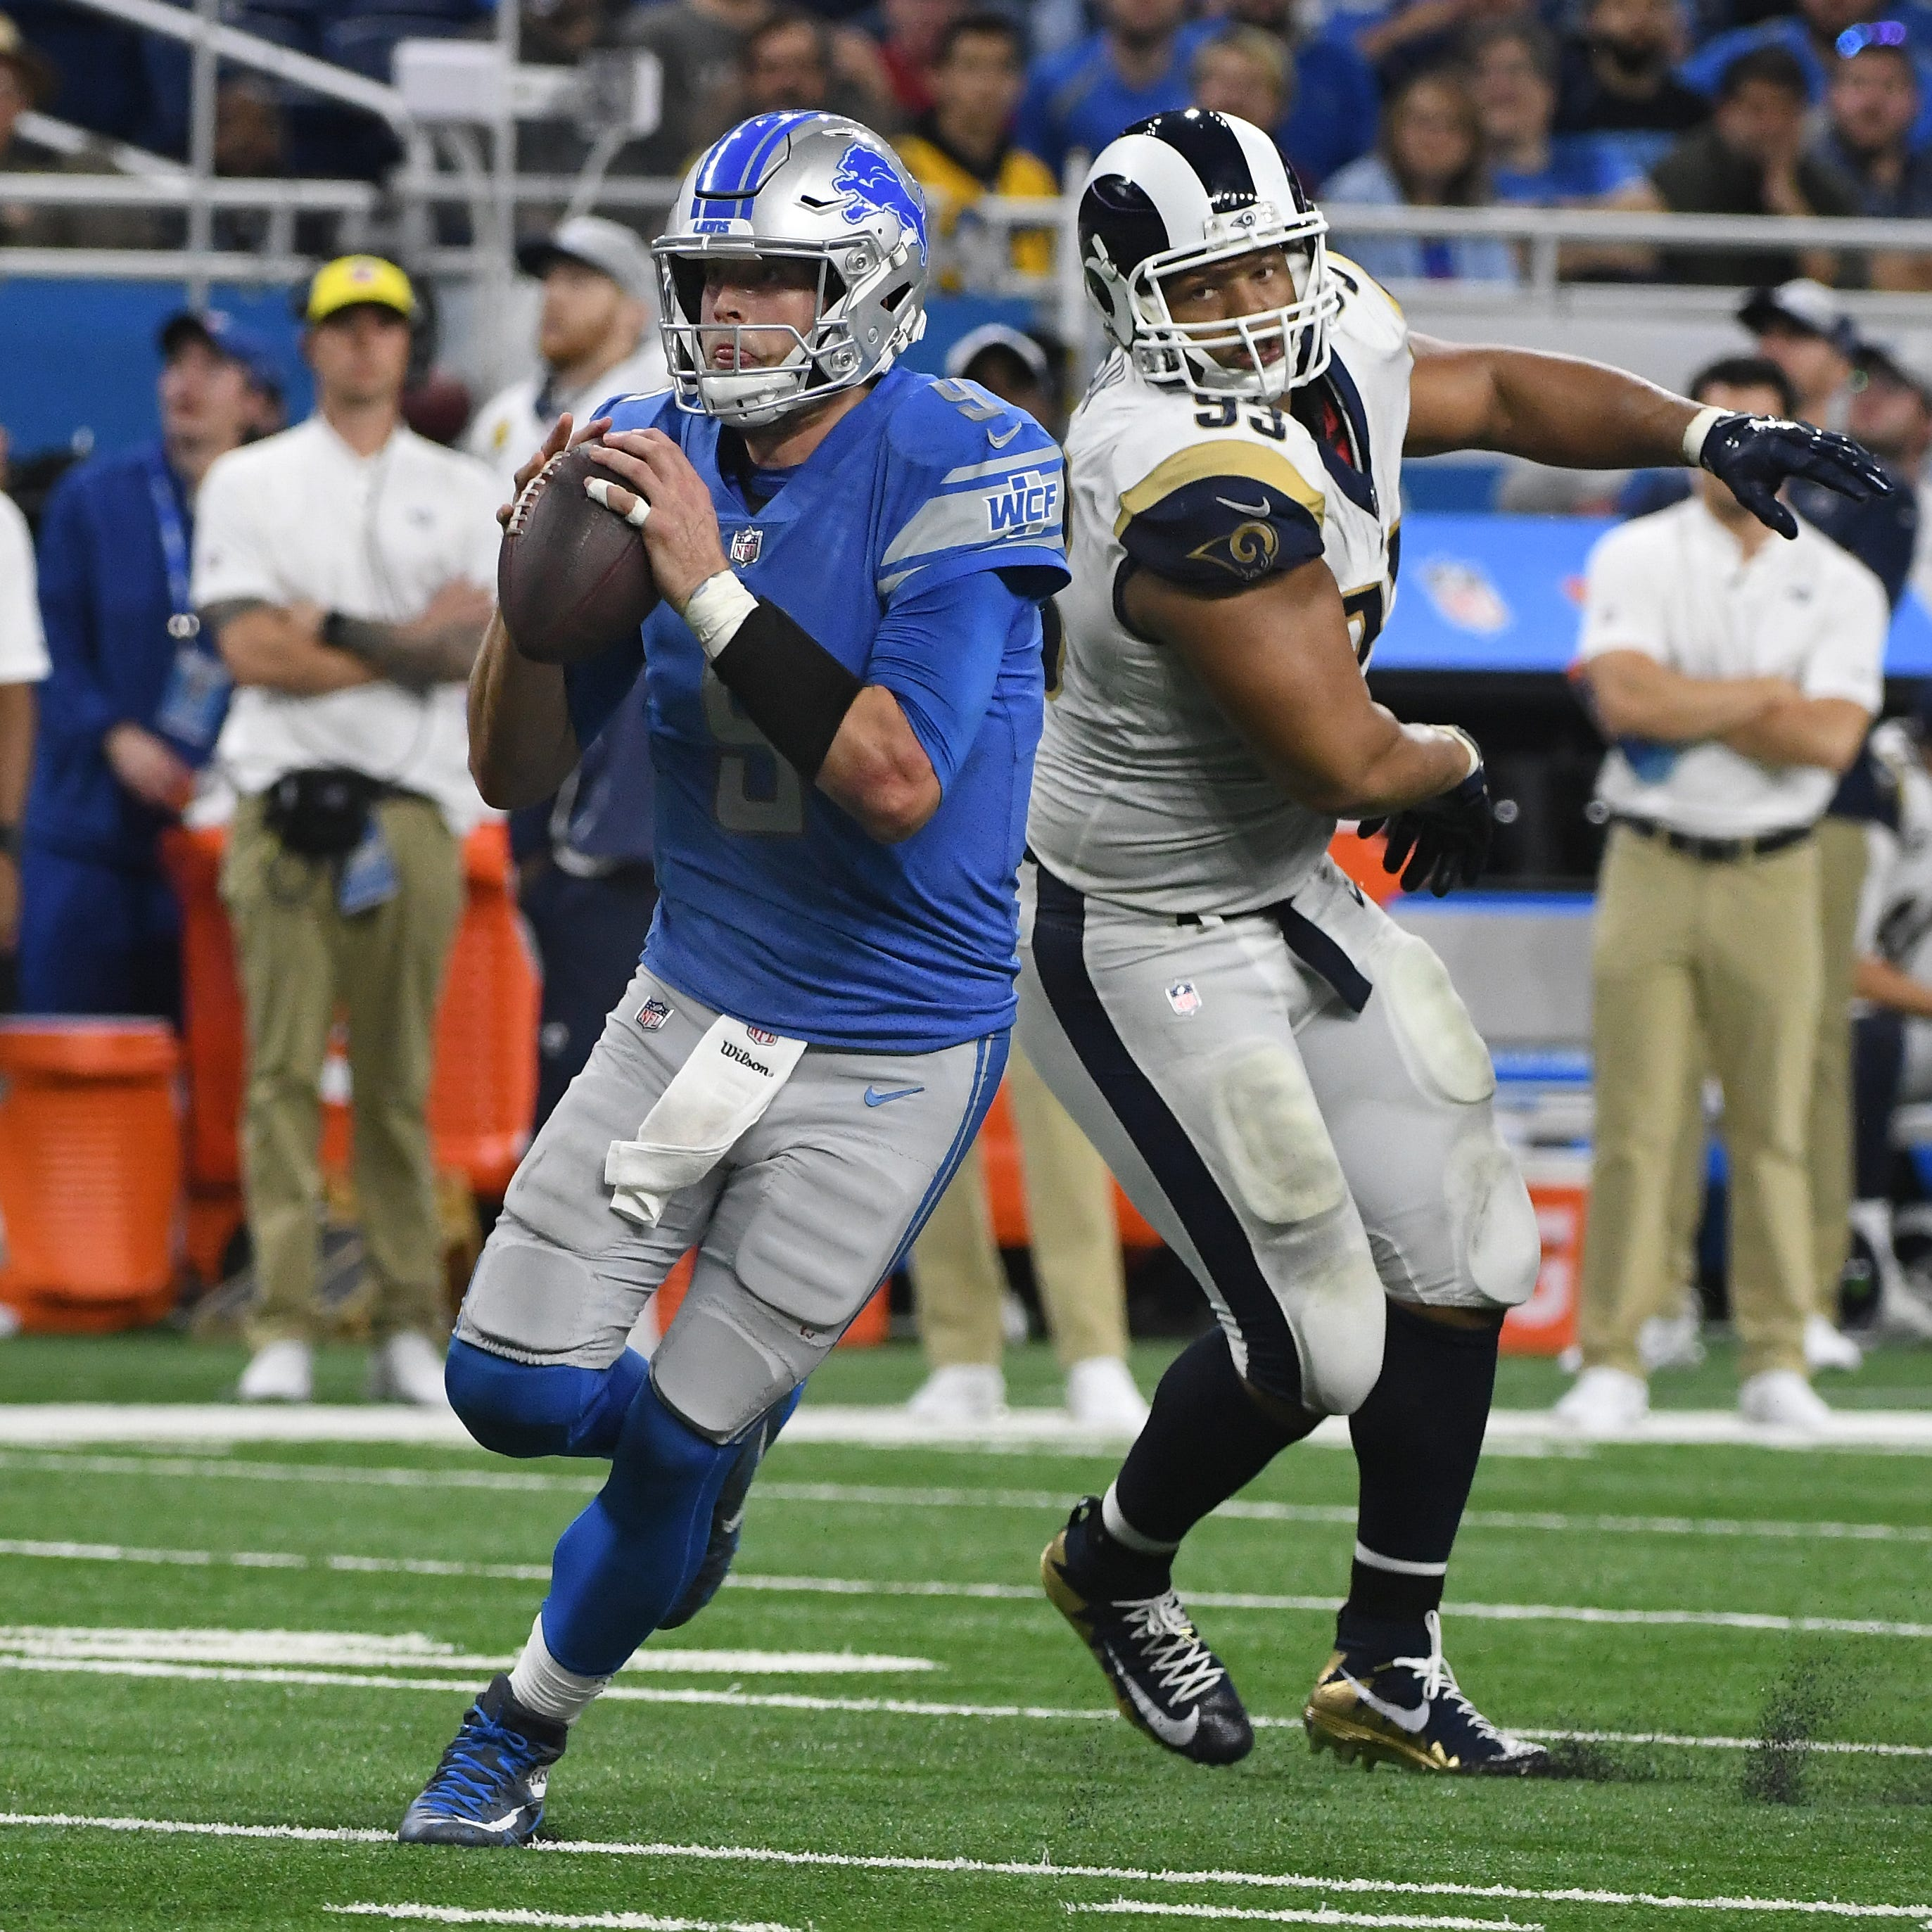 Pass game preview, Jahlani Tavai's use and other things to follow in Lions OTAs